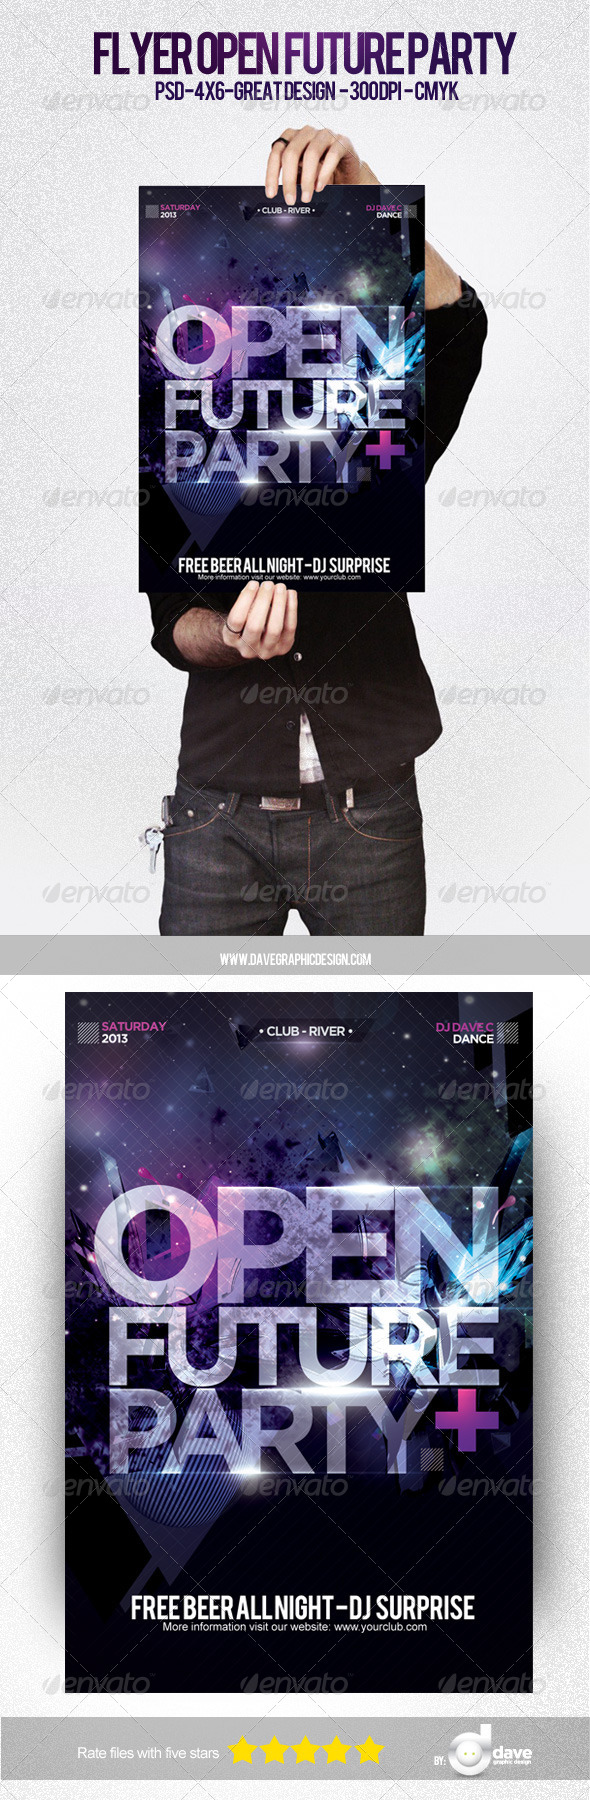 GraphicRiver Flyer Open Future Party 5076407